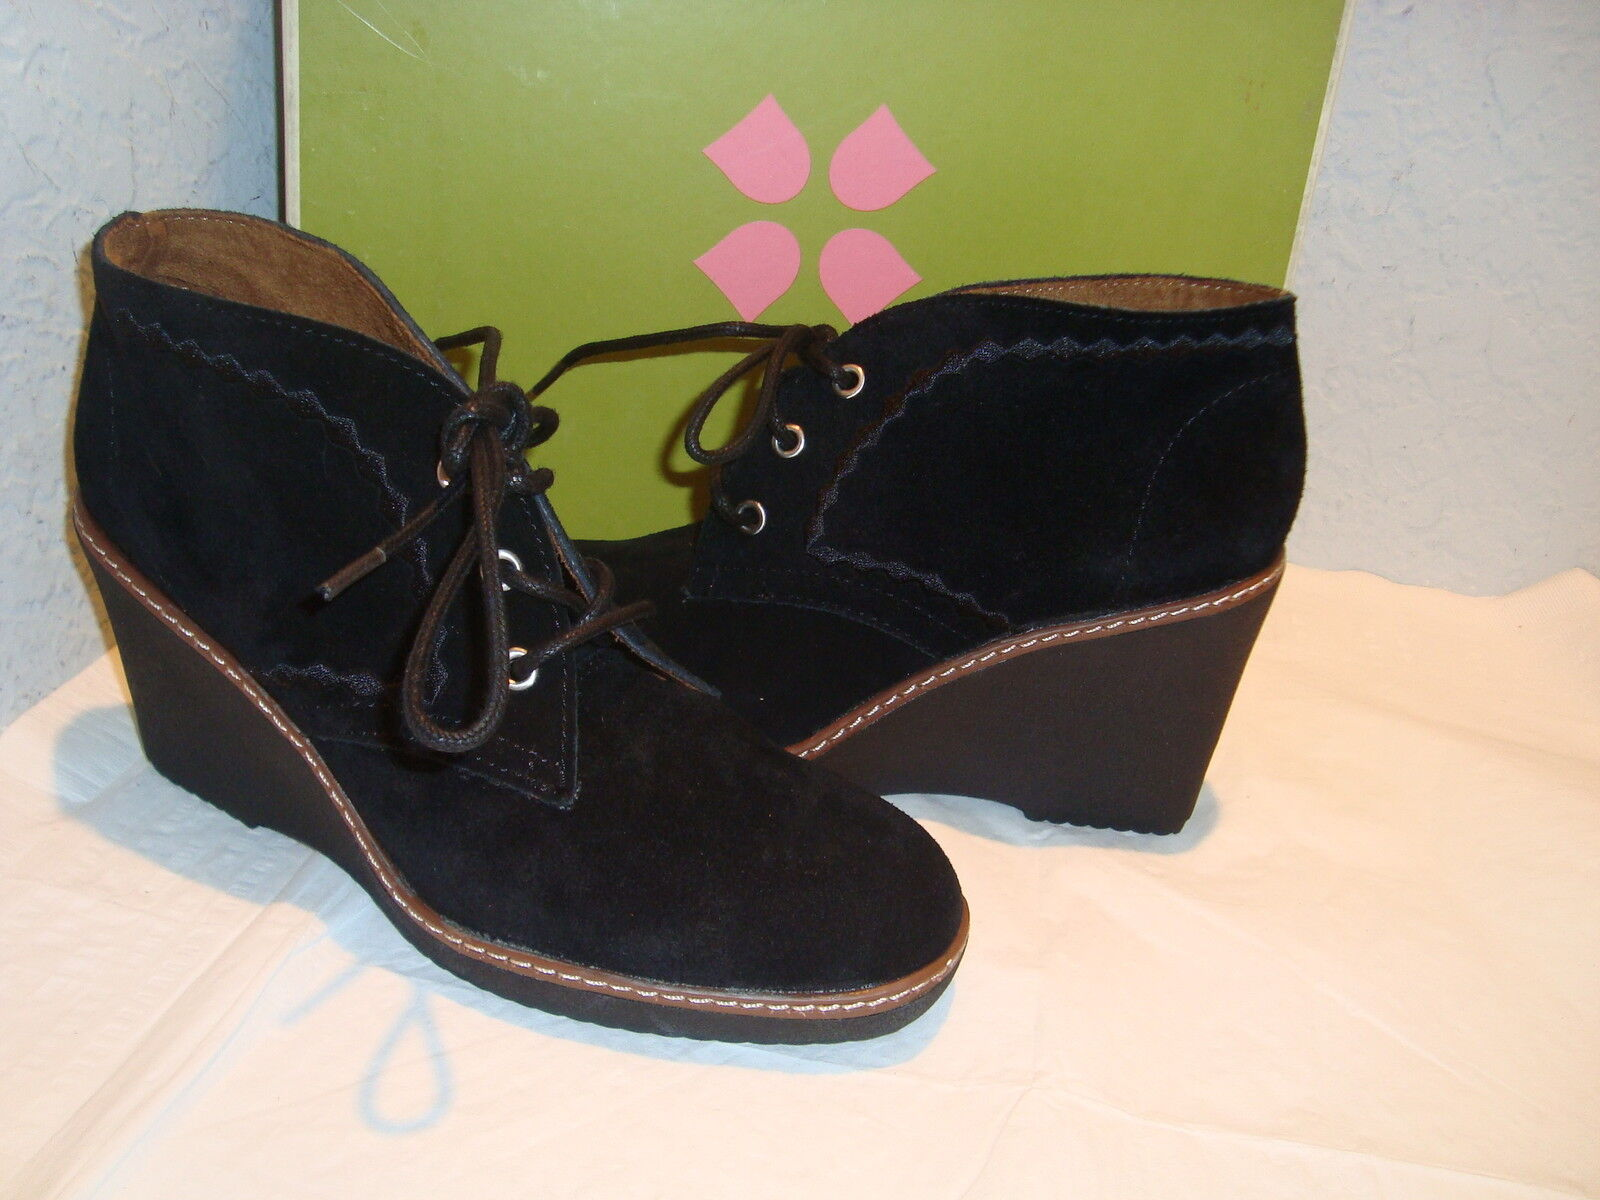 New Naturalizer Womens Kaitlyn Oxford Black Ankle Boots Shoes 5.5 Medium